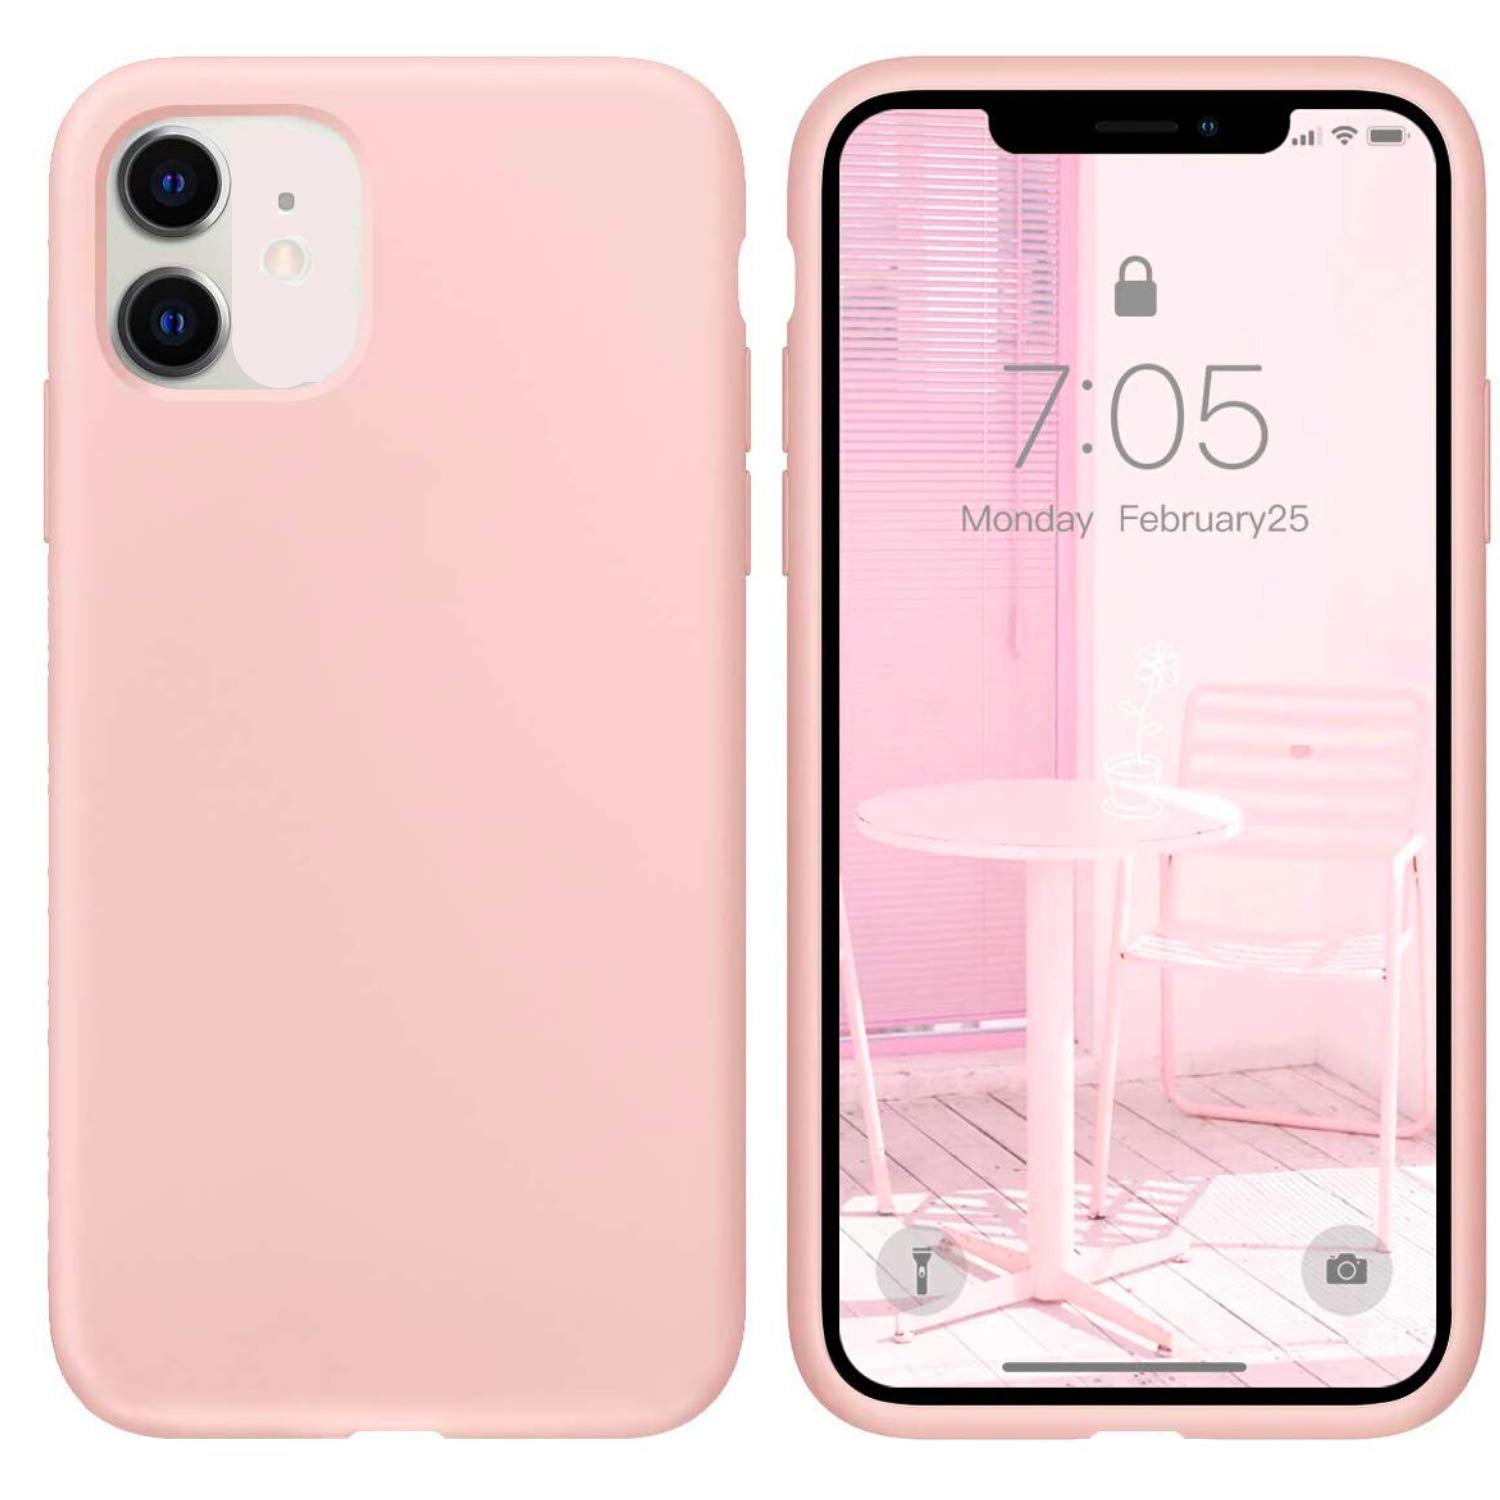 """IceSword iPhone 11 Case, Pink Sand iPhone 11 Silicone Case, Gel Rubber Full Body, iPhone 11 Cute iPhone 11 case, Soft Microfiber Cloth, 6.1"""" iPhone 11 case Silicone, iPhone 11 case Cute - Pink Sand"""